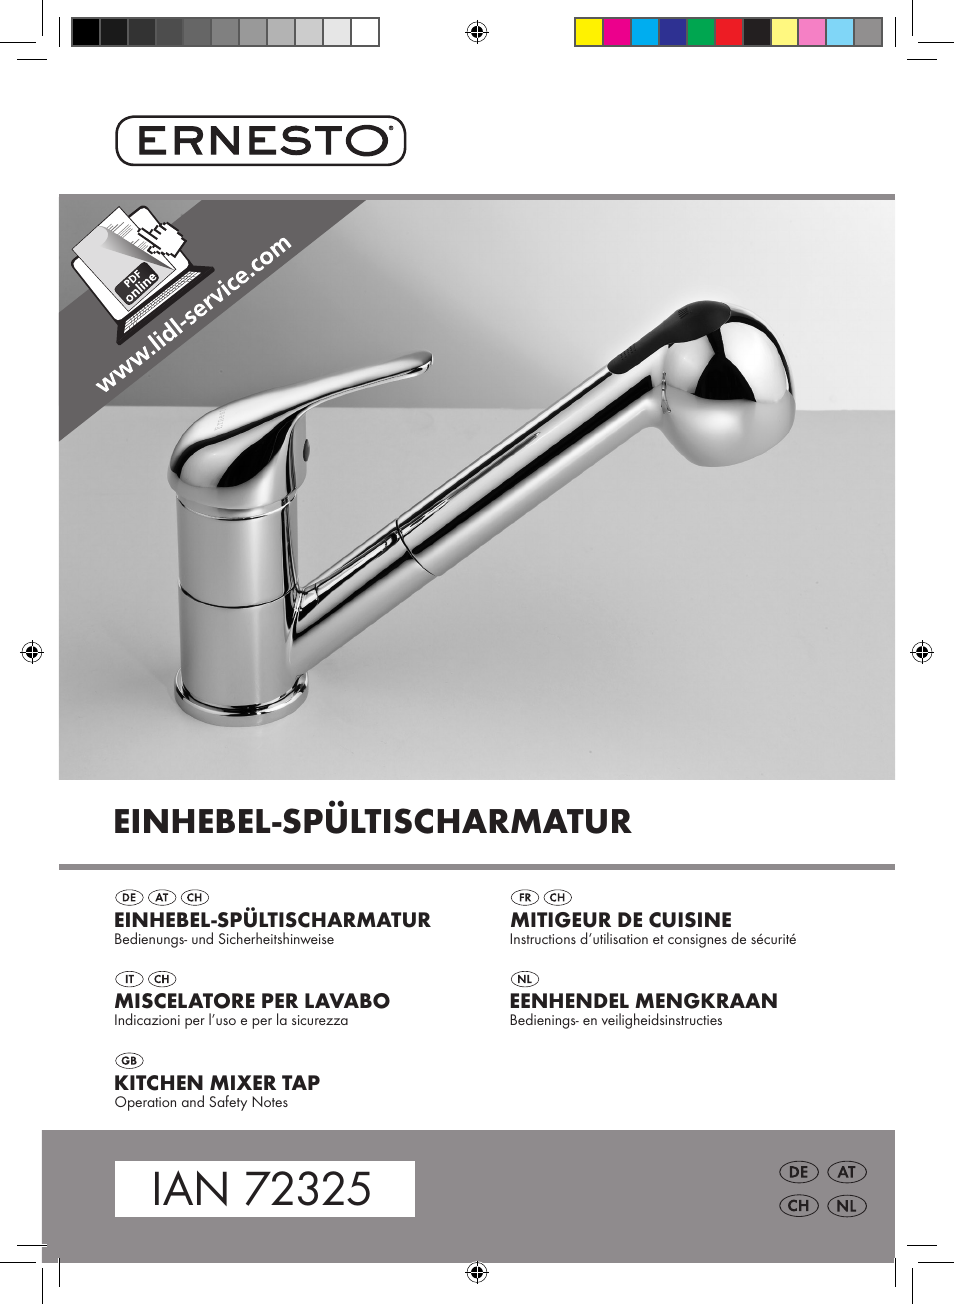 Ernesto Kitchen Mixer Tap User Manual 41 Pages